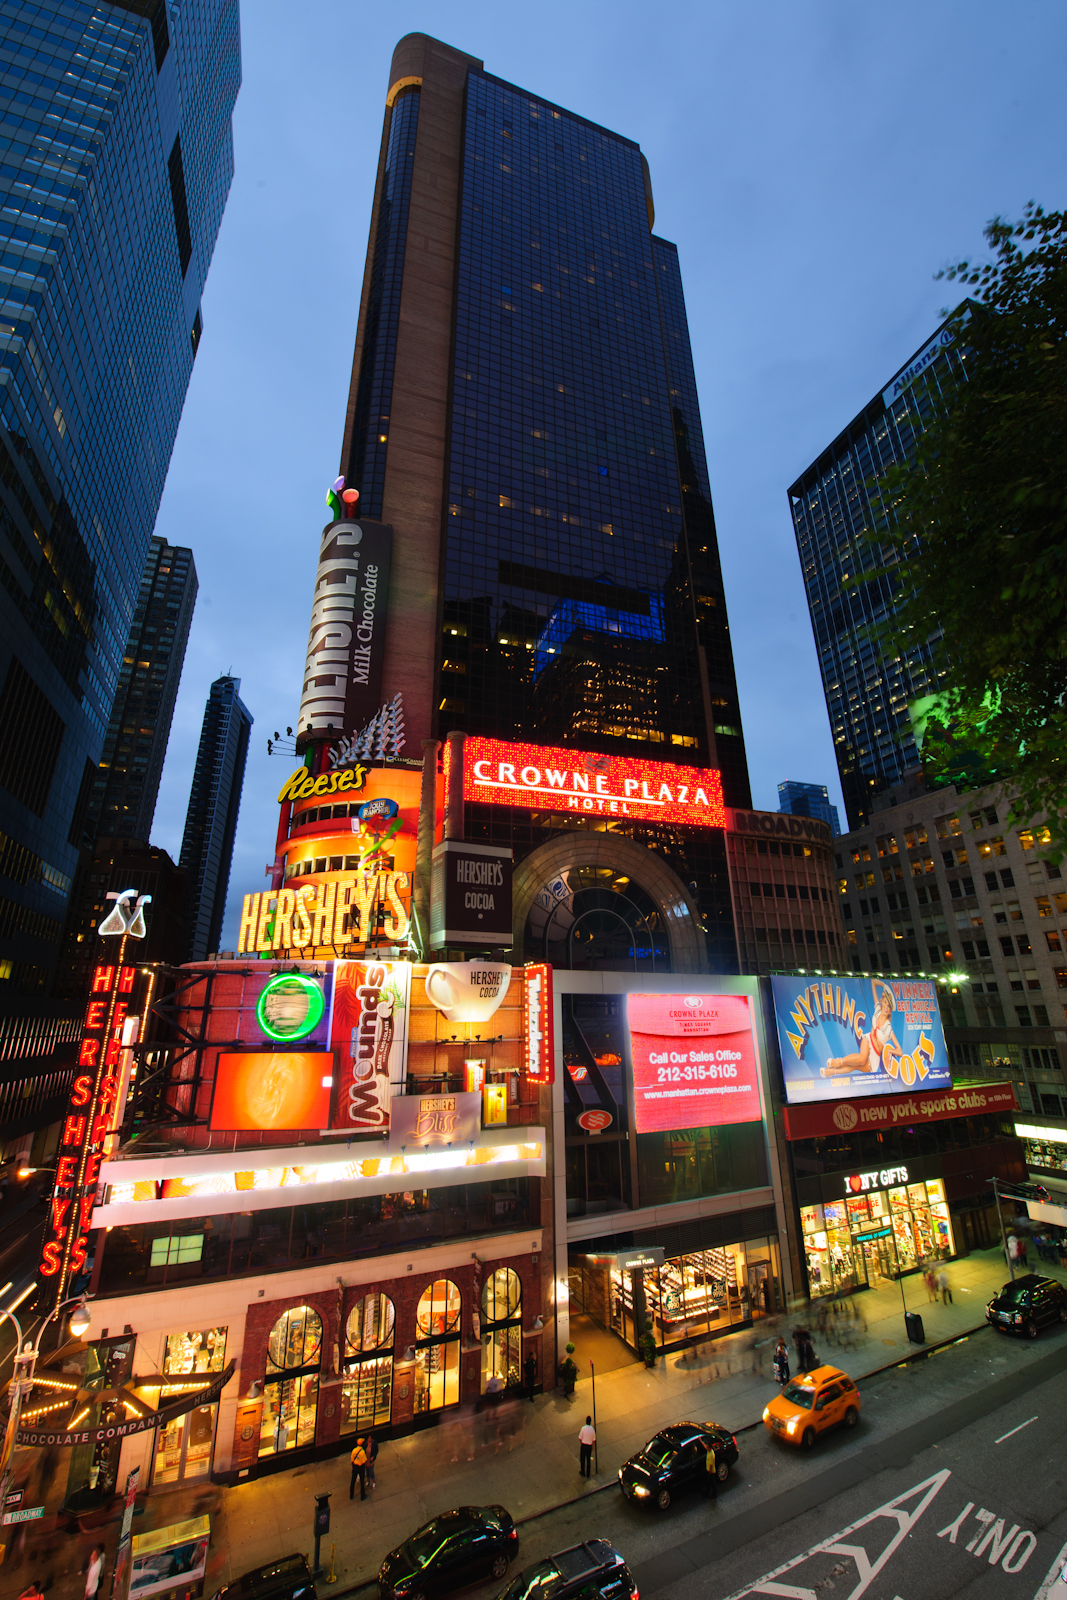 crowne plaza hotel times square wikipedia